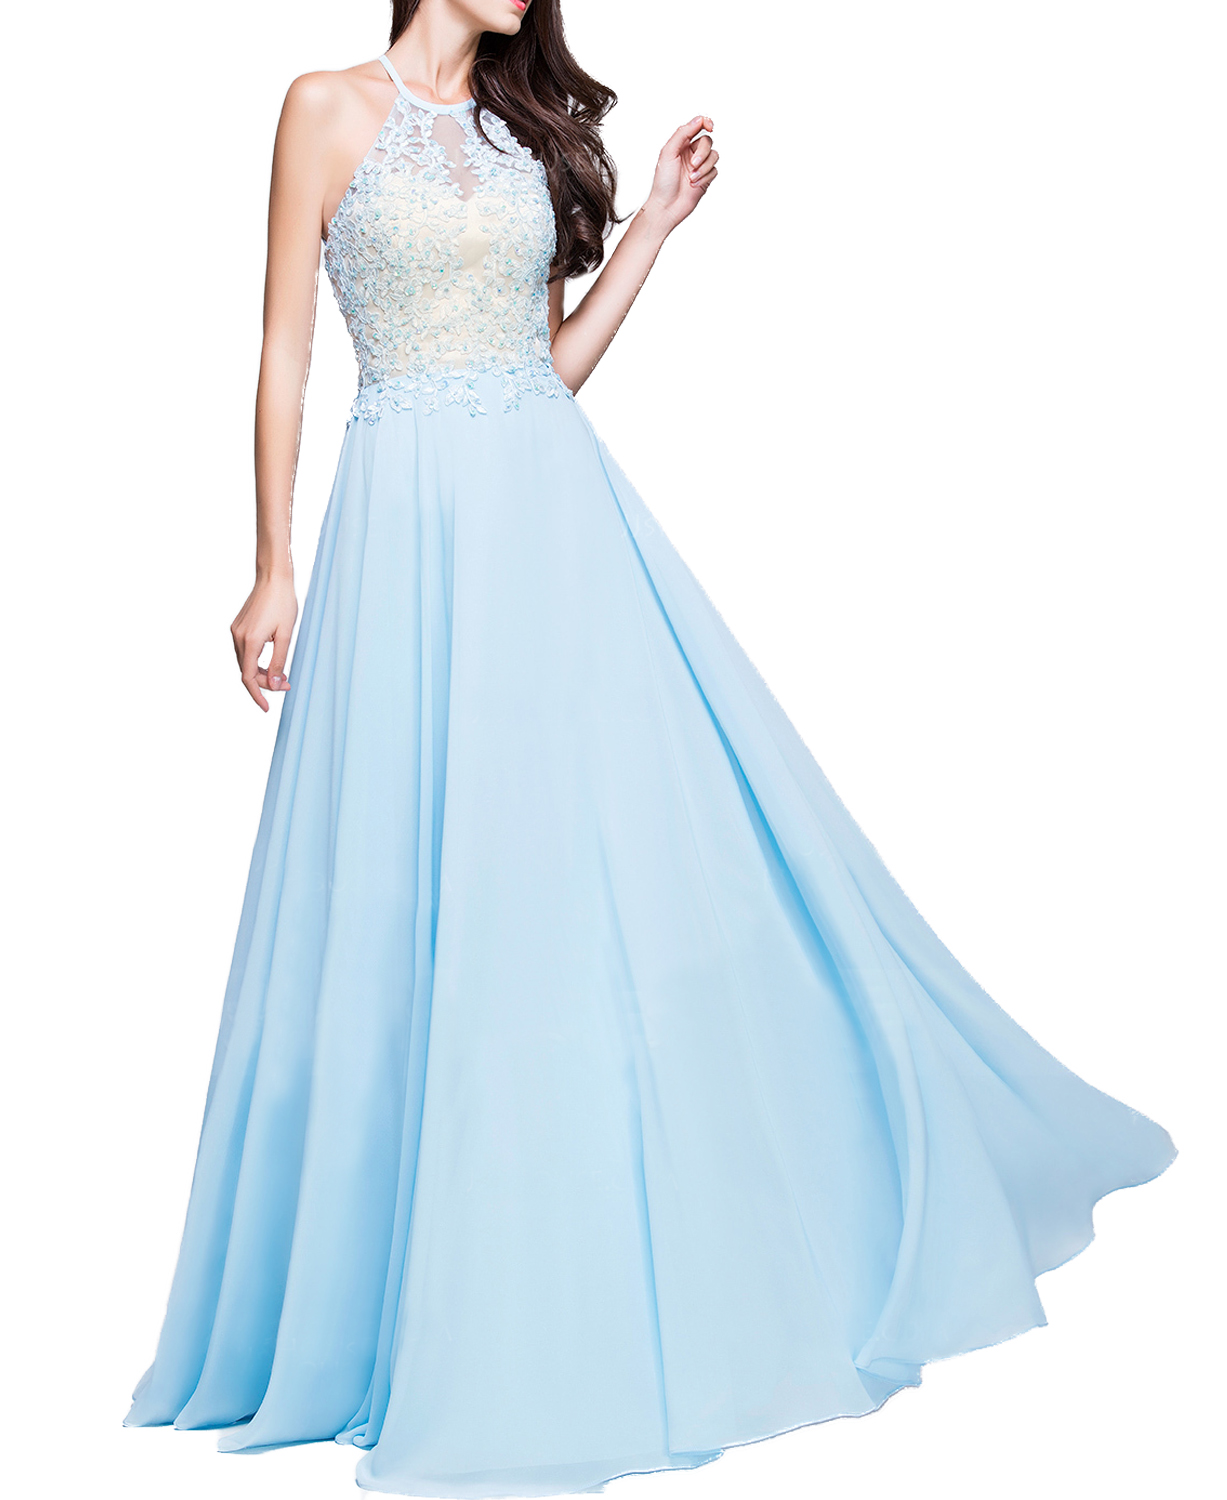 14d7cd42eea A-Line Princess Scoop Neck Floor-Length Chiffon Prom Dress With Beading  Appliques Lace Sequins